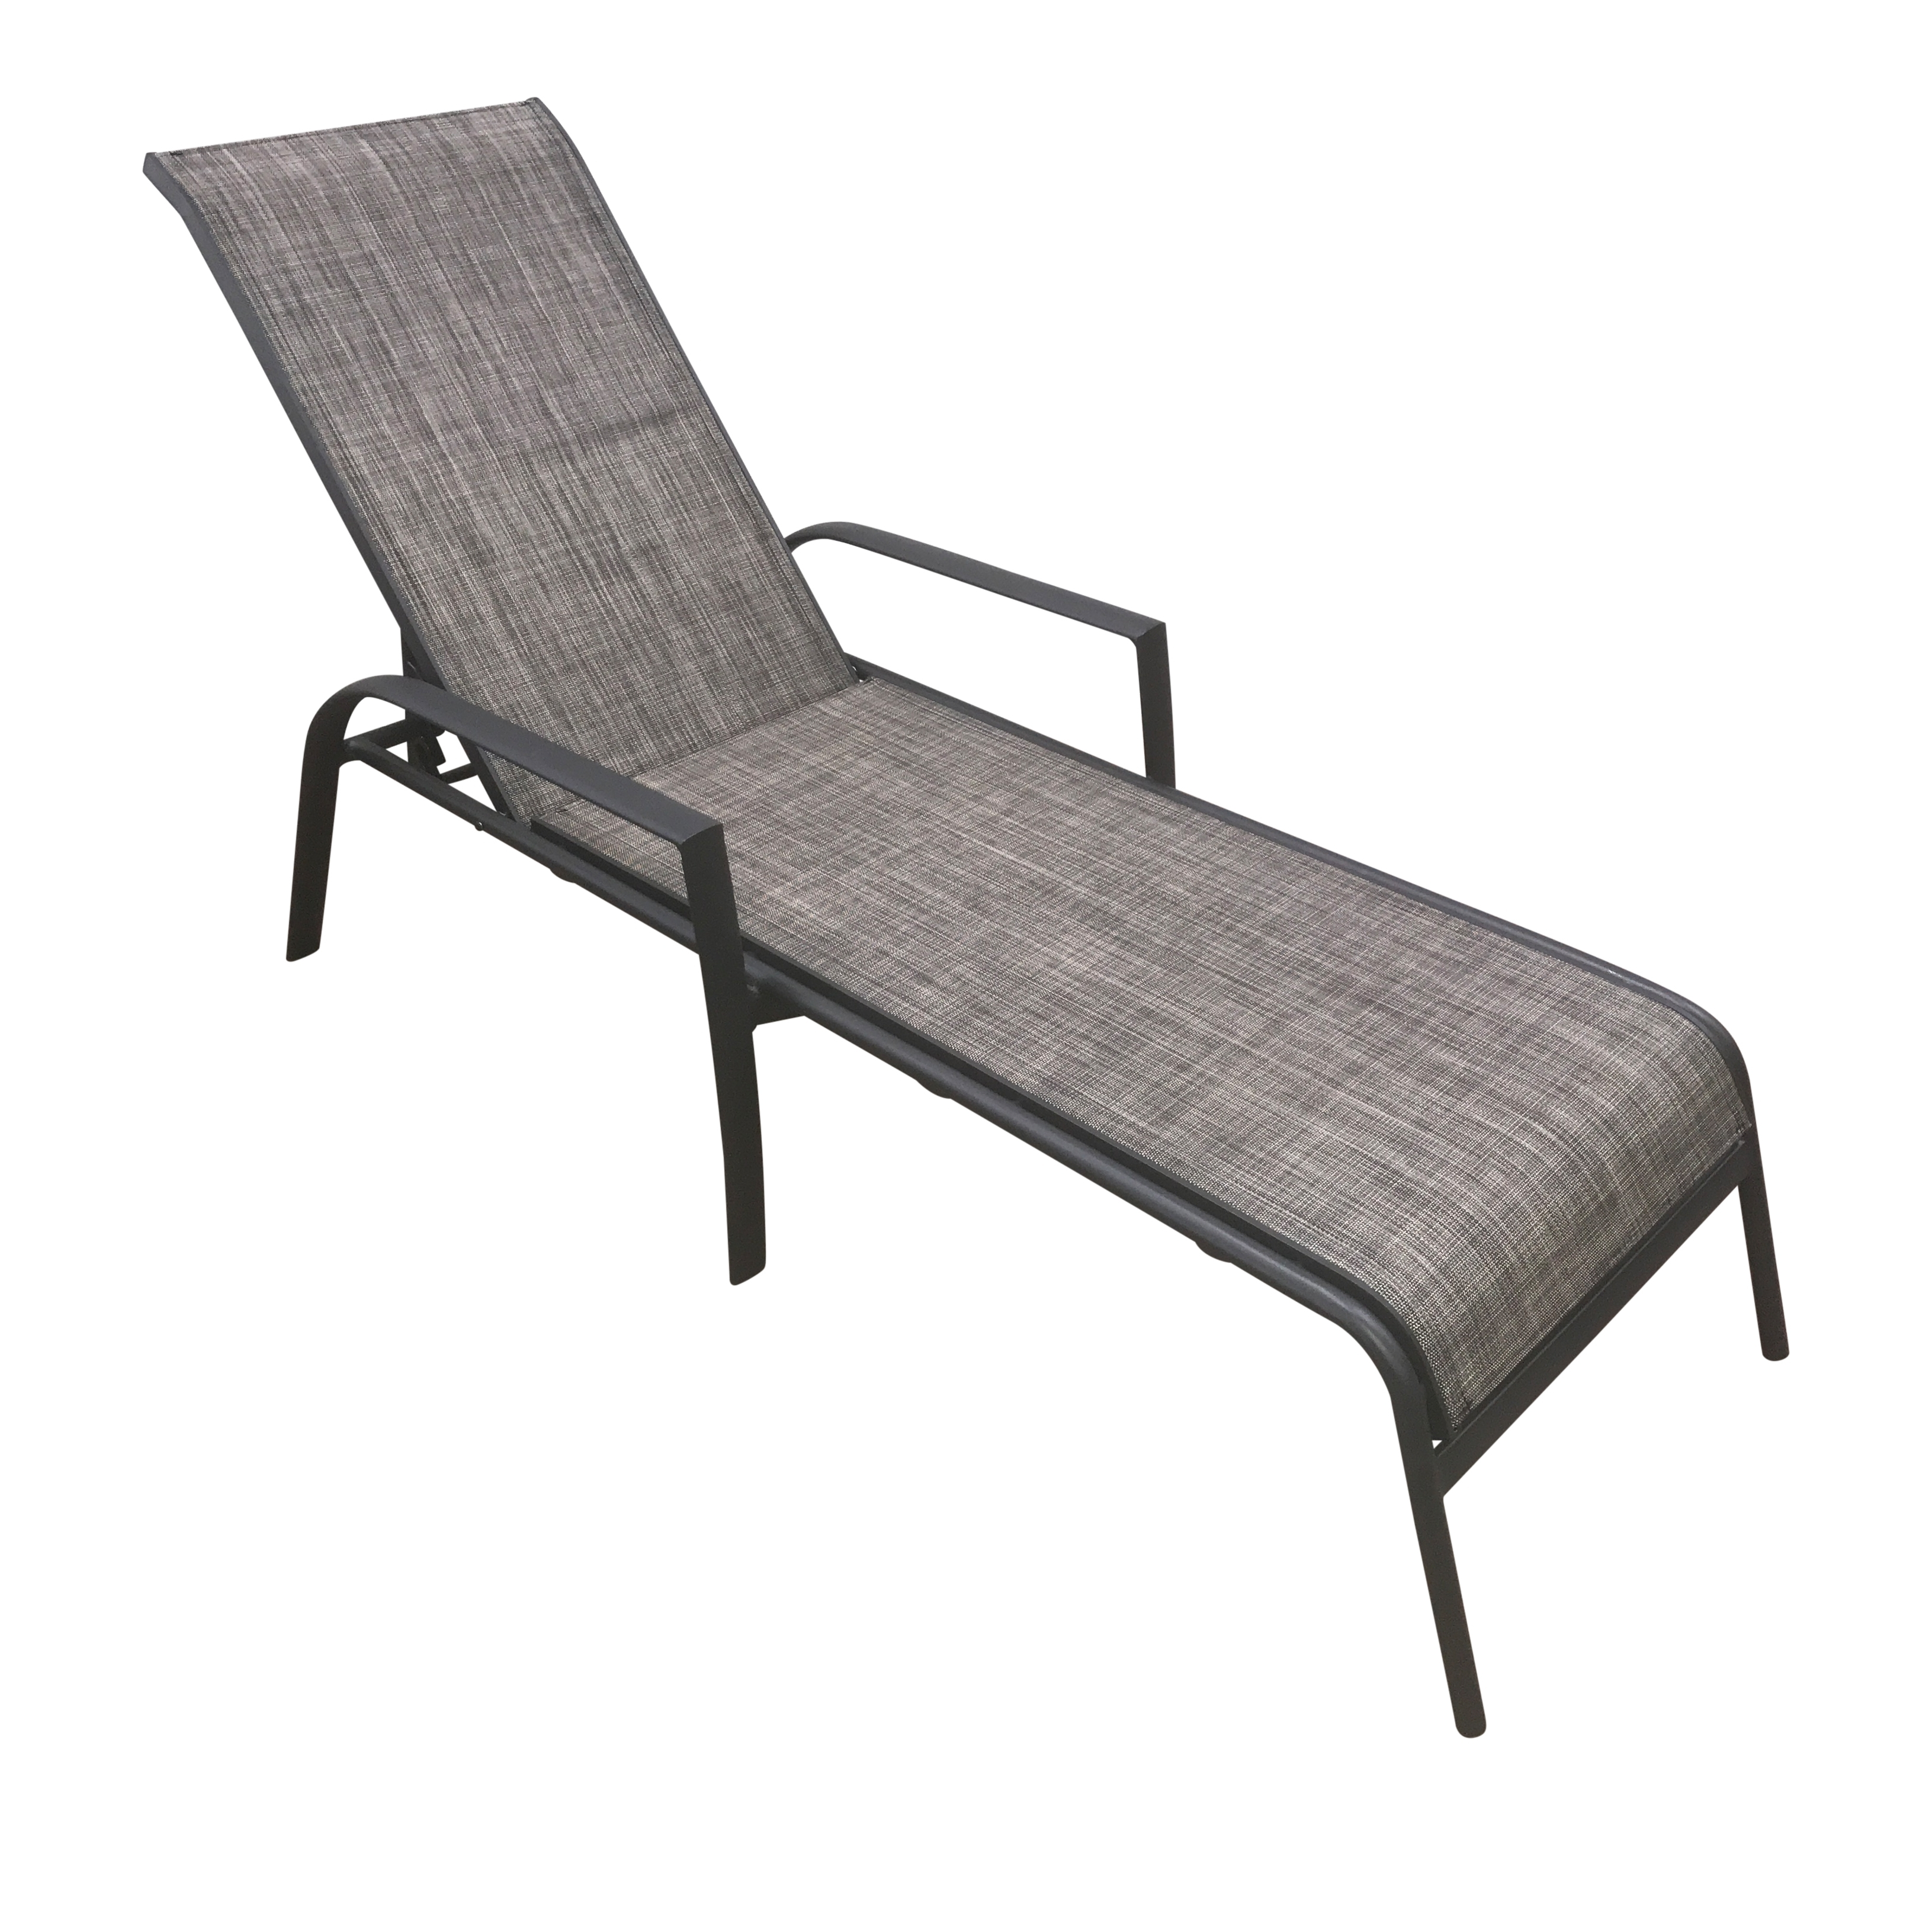 Fabric Outdoor Chaise Lounge Chairs For Well Known Convertible Chair : For Bedroom Stackable Sling Chairs Stacking (View 4 of 15)